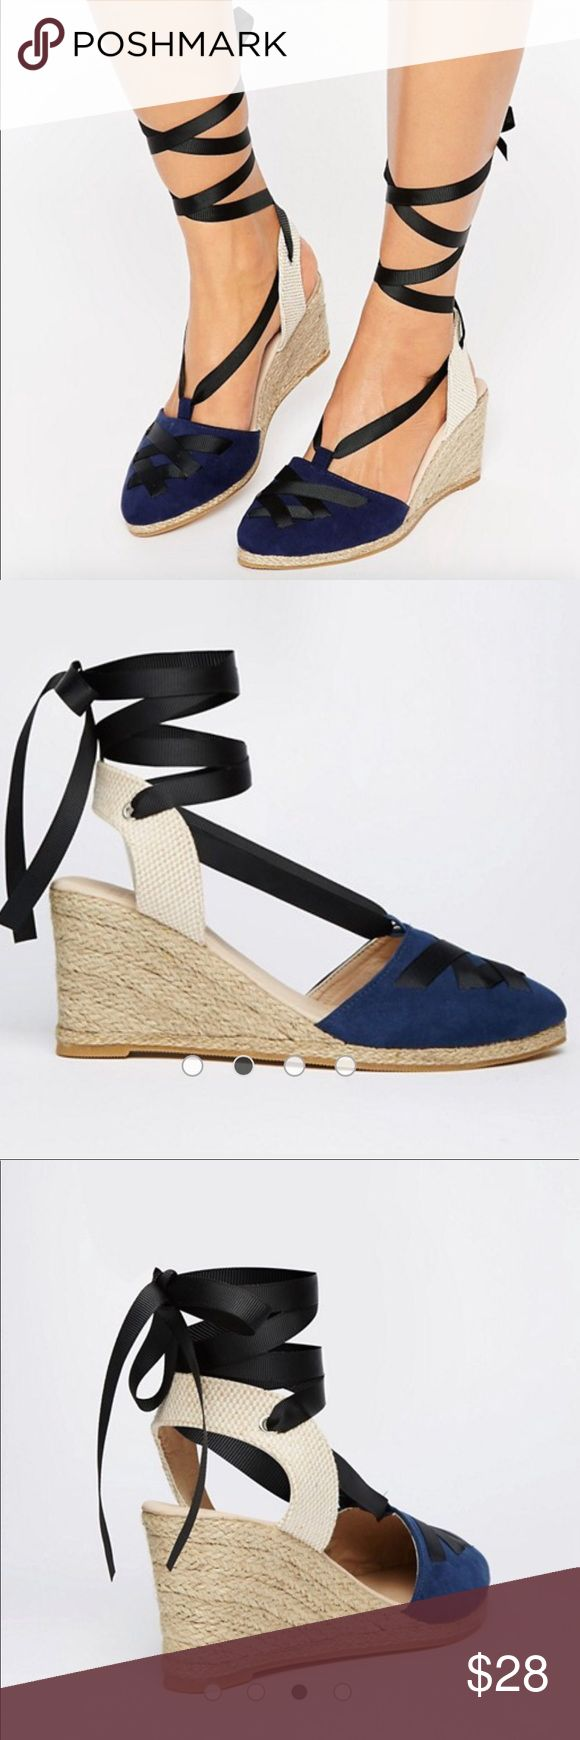 """ASOS Jacqueline point wedge closed toe espadrilles NWOB. Navy blue with black laces woven throughout tie up the ankle currently sold out on the ASOS website. 3"""" wedge. ASOS Shoes Wedges"""